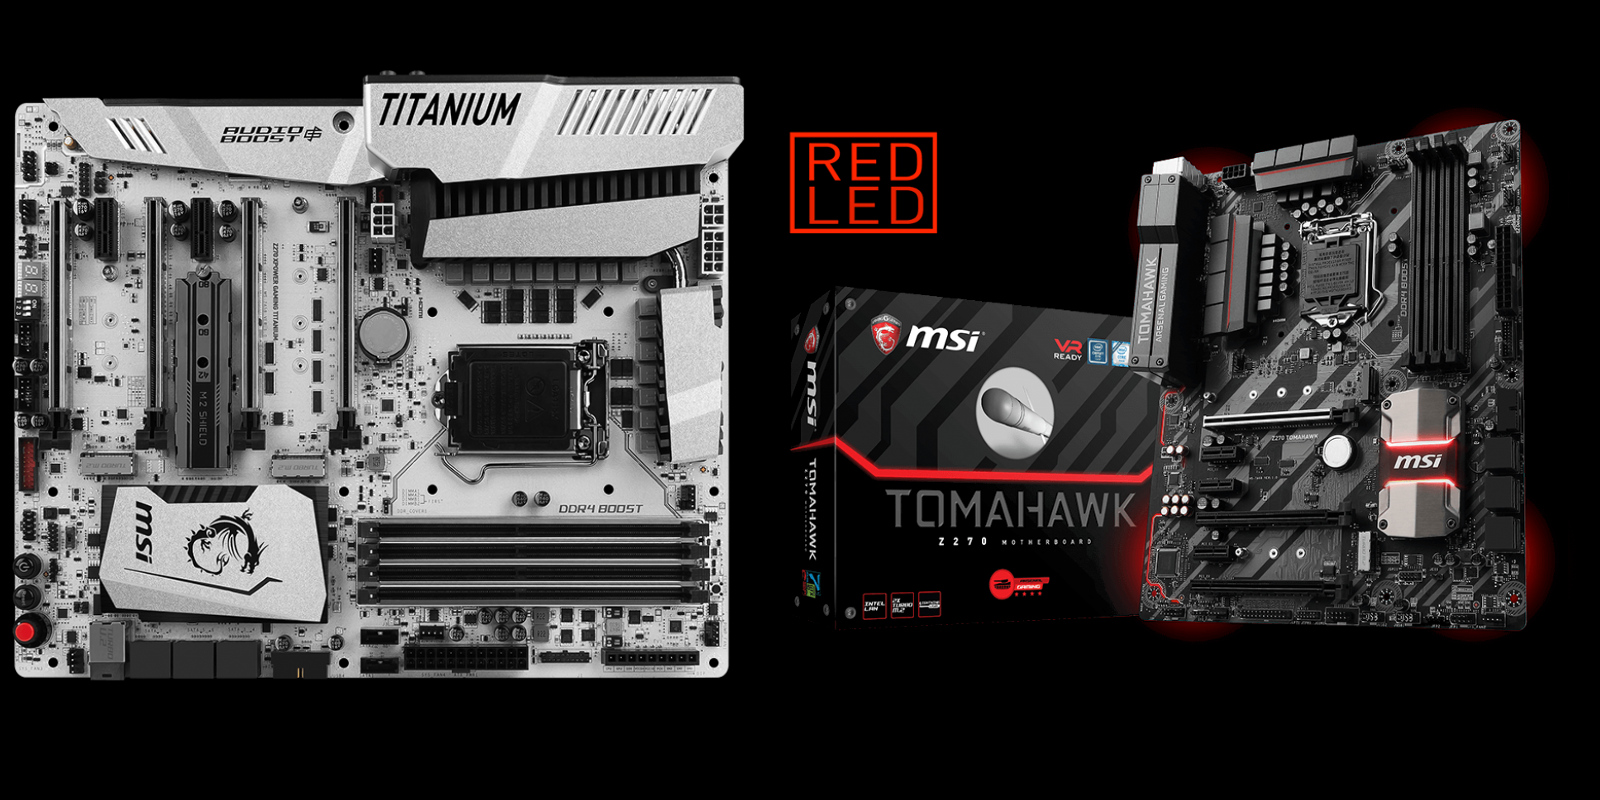 The MSI Z270 TOMAHAWK and Z270 XPOWER GAMING TITANUM. Click to increase